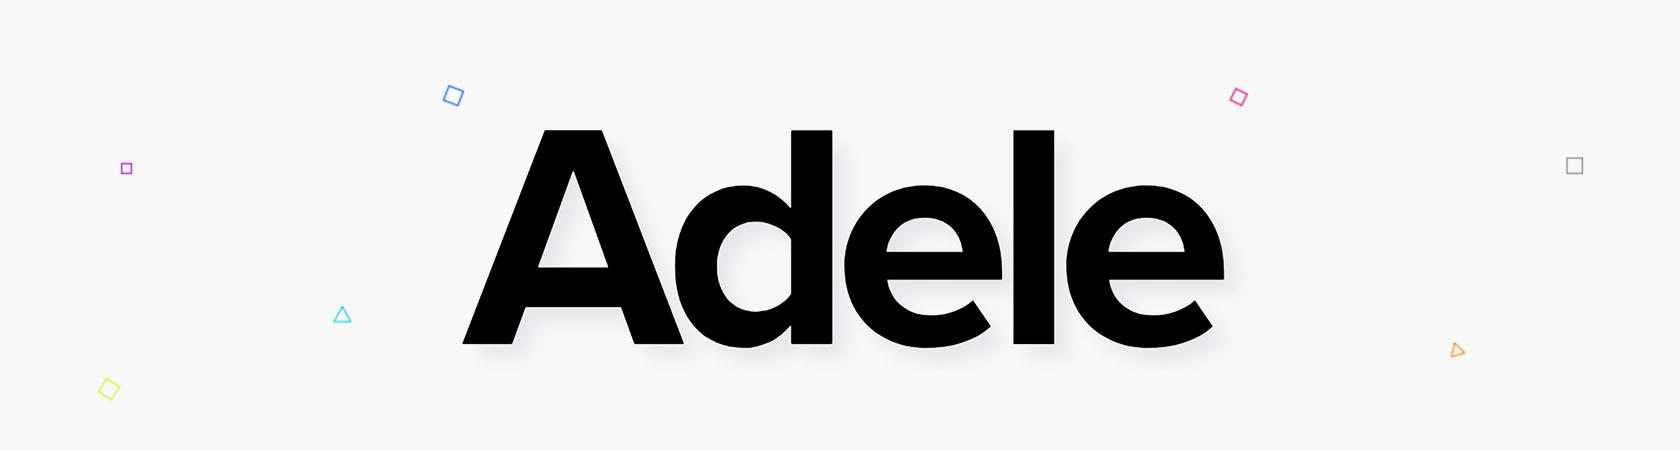 Adele public design systems and pattern libraries